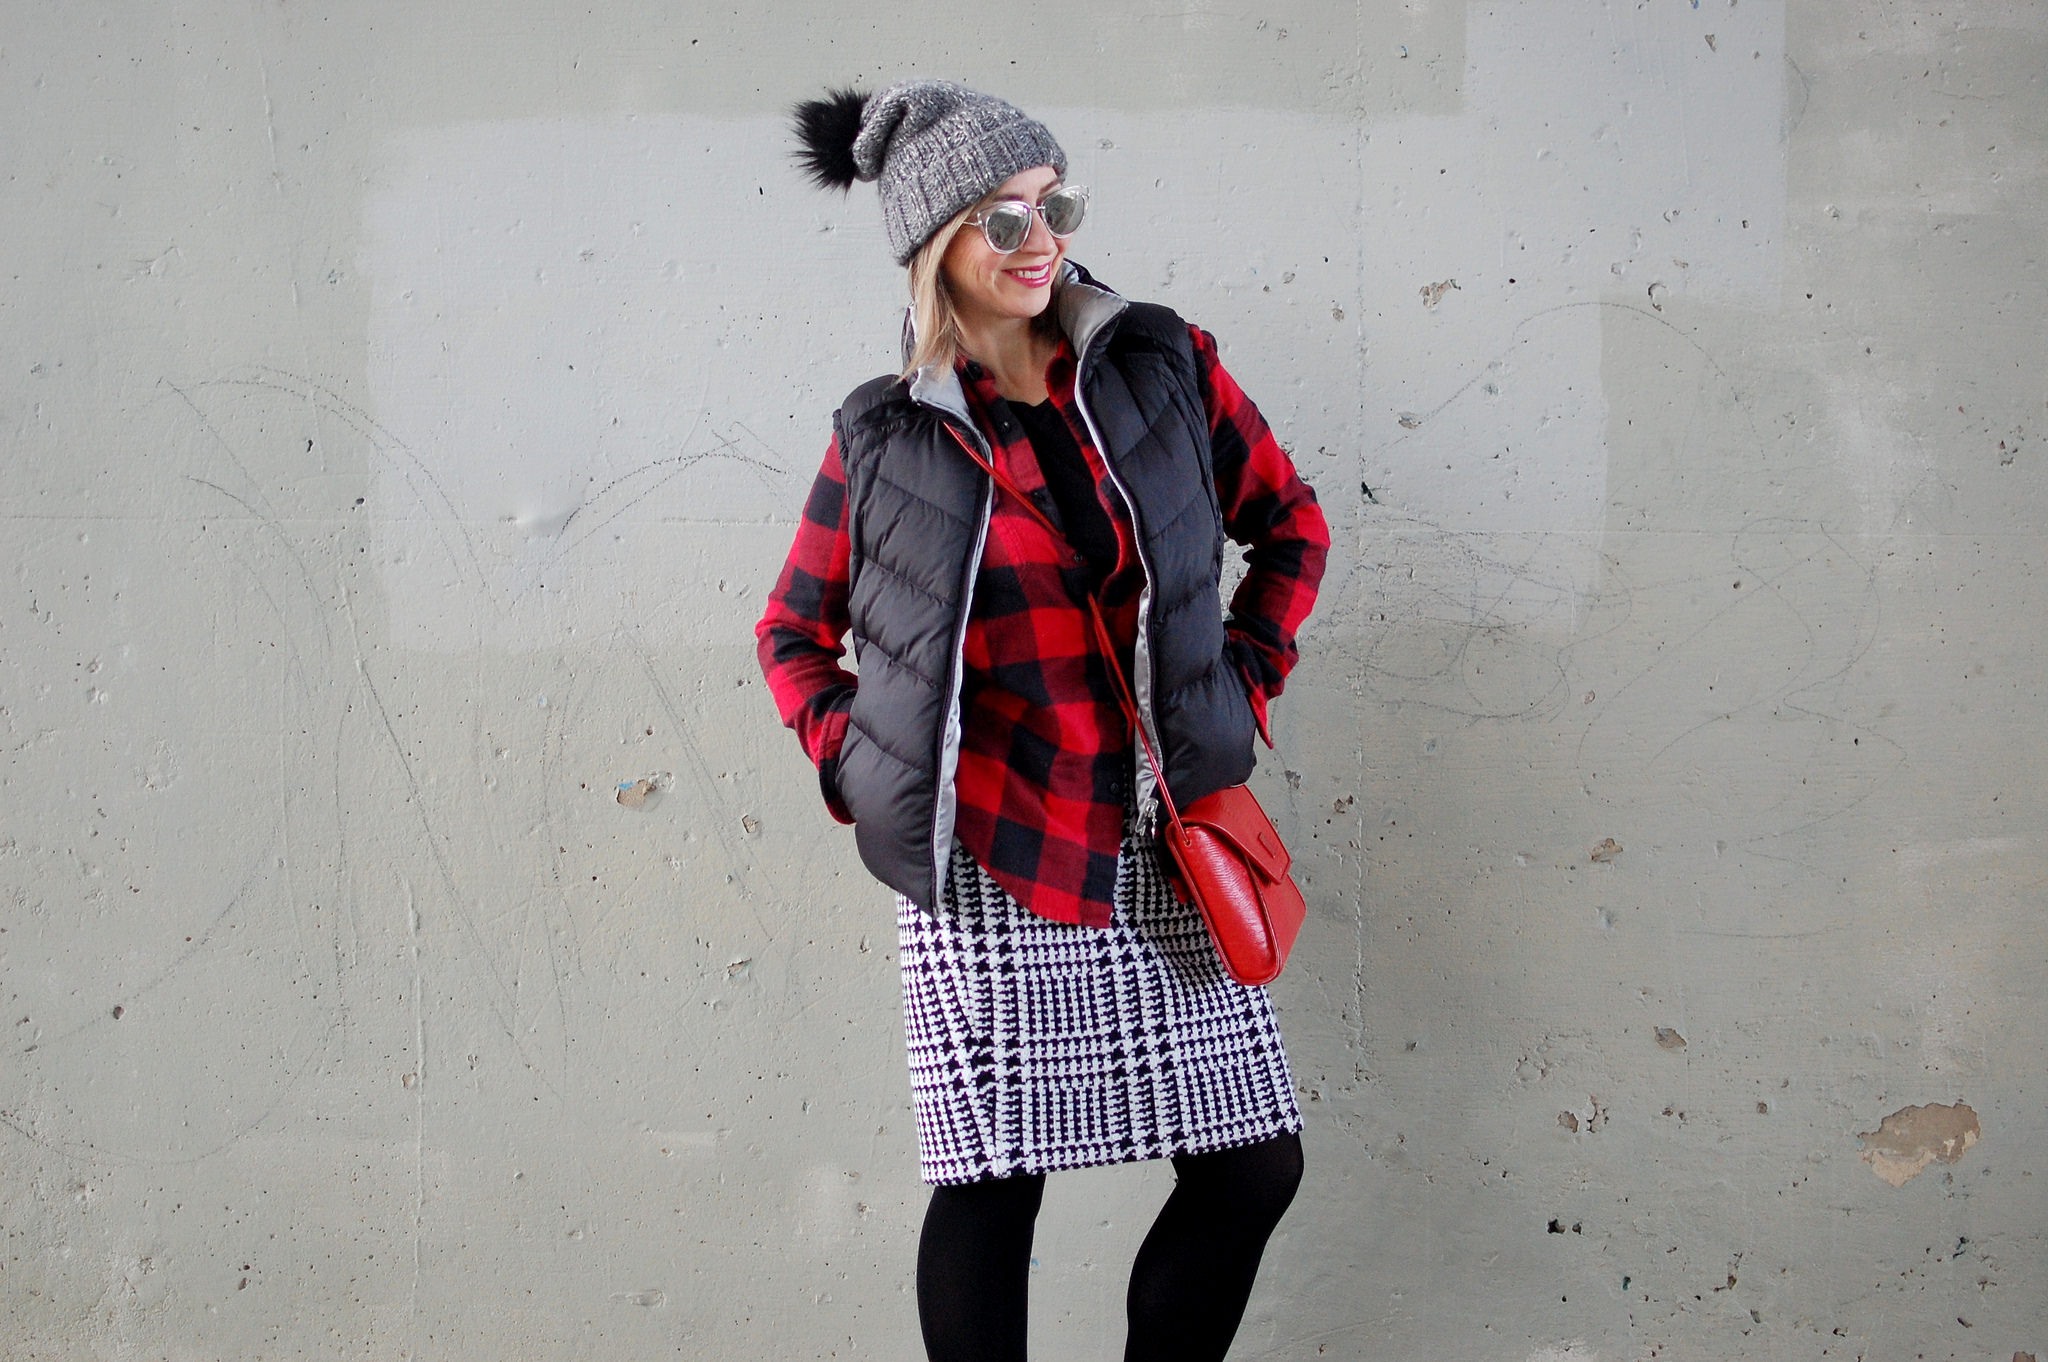 puffy vest flannel plaid houndstooth skirt daily outfit blog ootd whatiwore2day